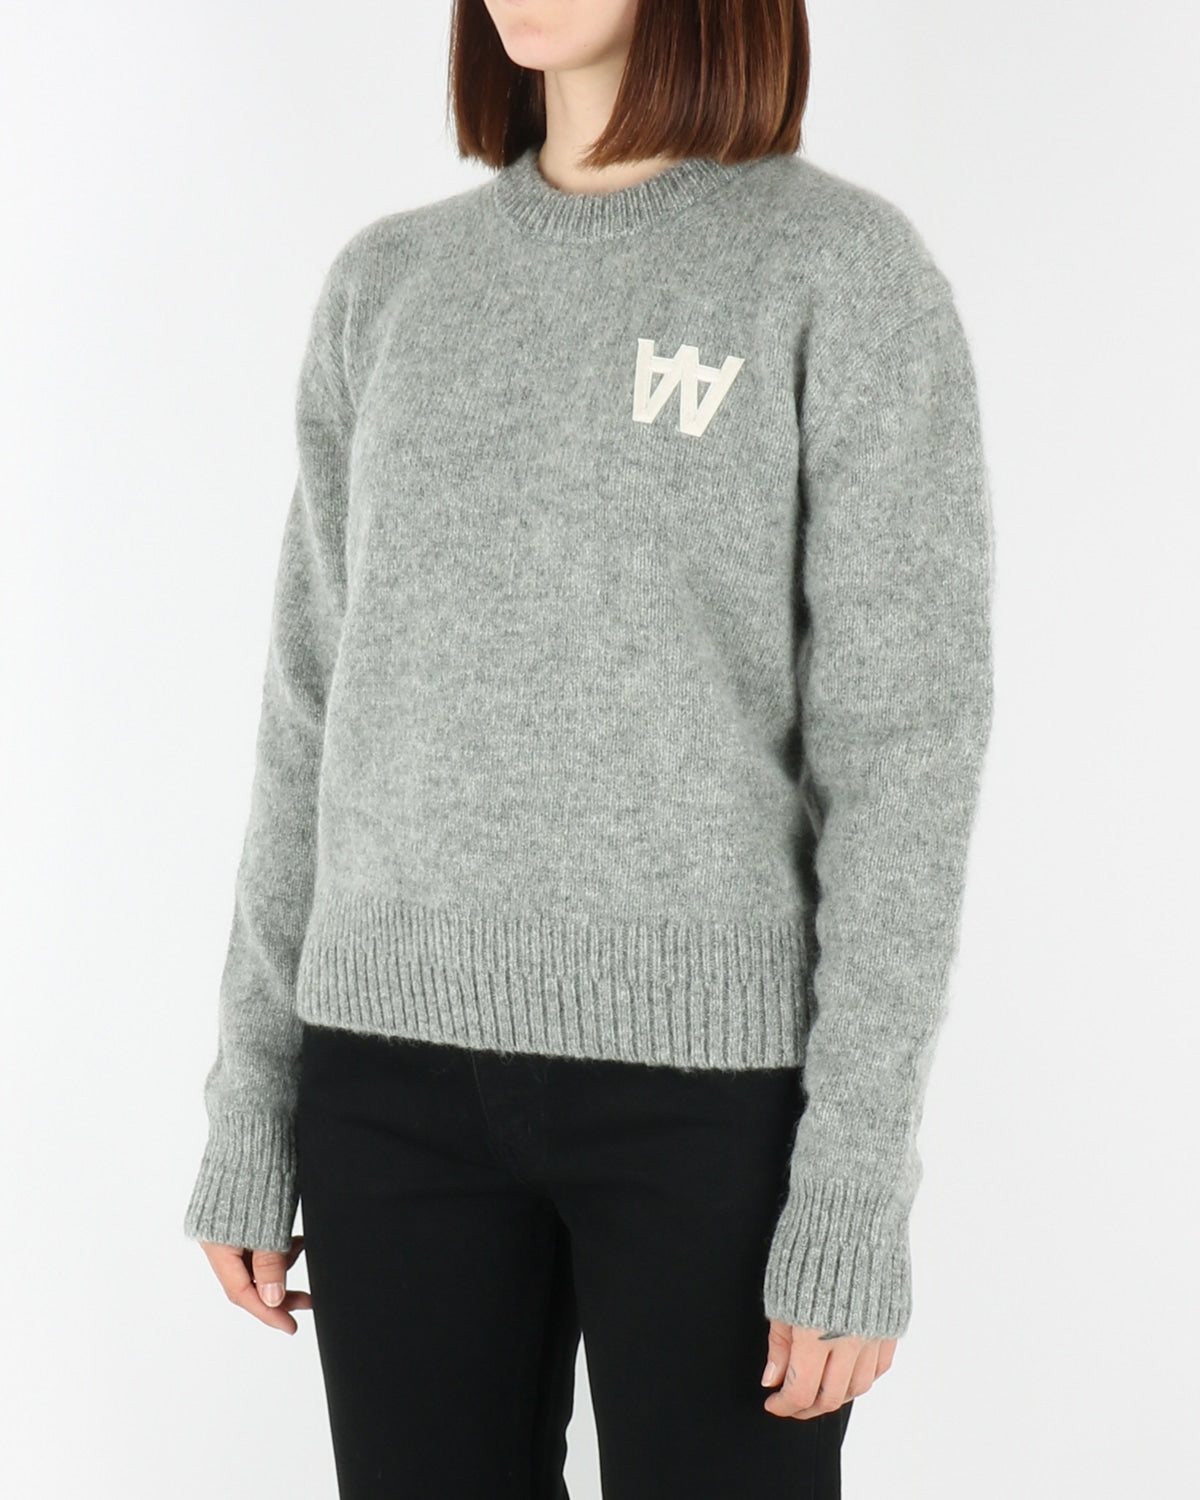 wood wood_anneli_sweatshirt_grey melange_view_2_3